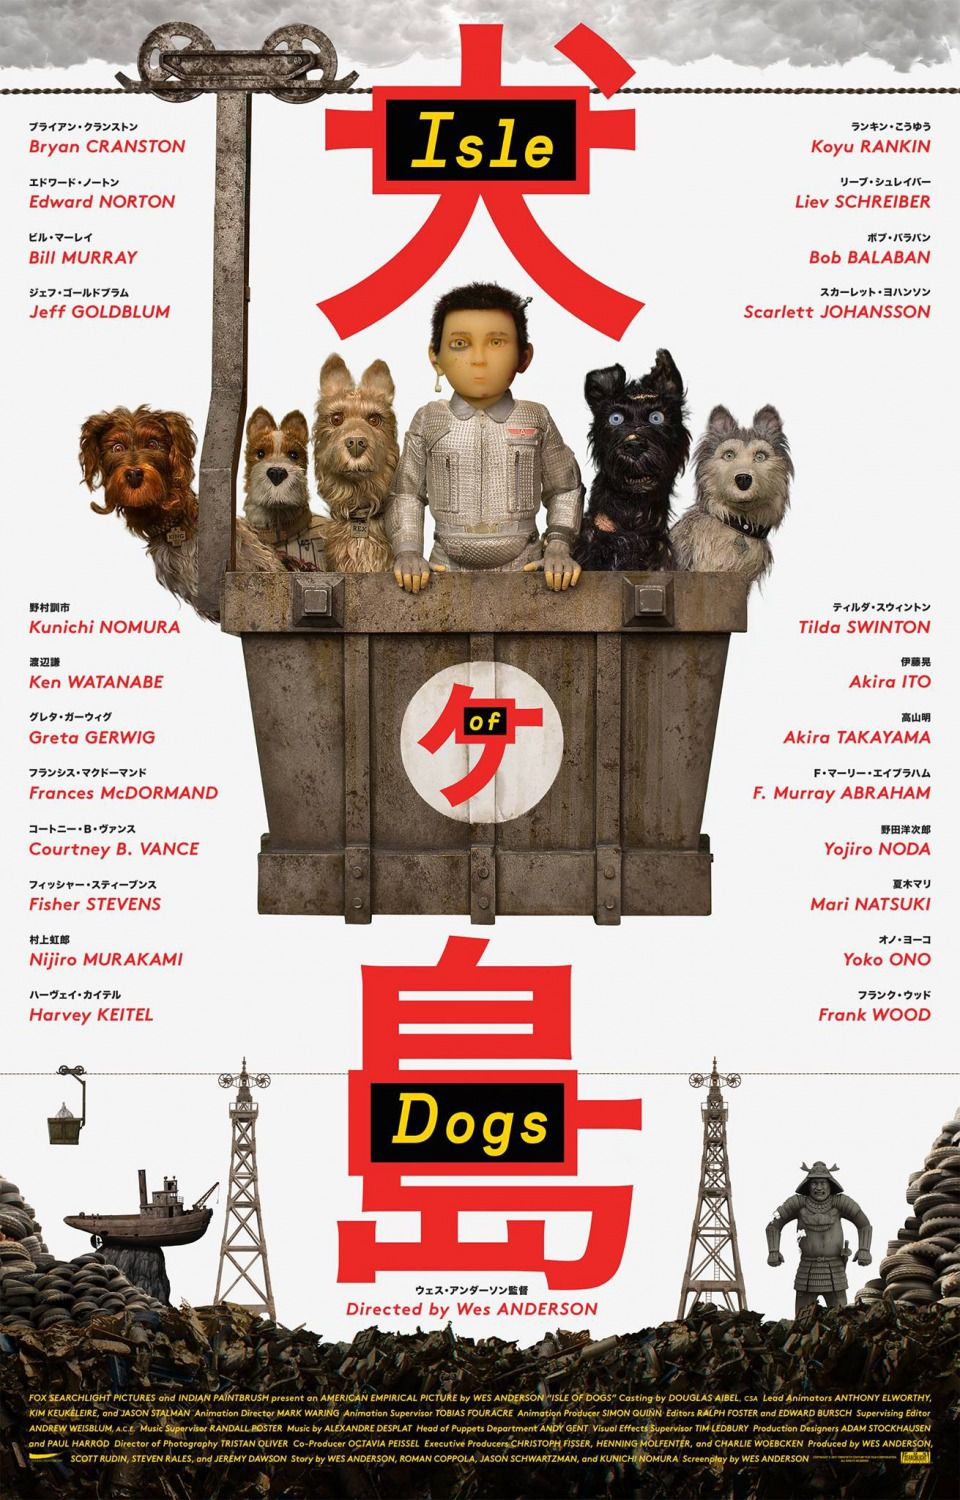 Isle of Dogs - L'Isola dei Cani - animated film poster